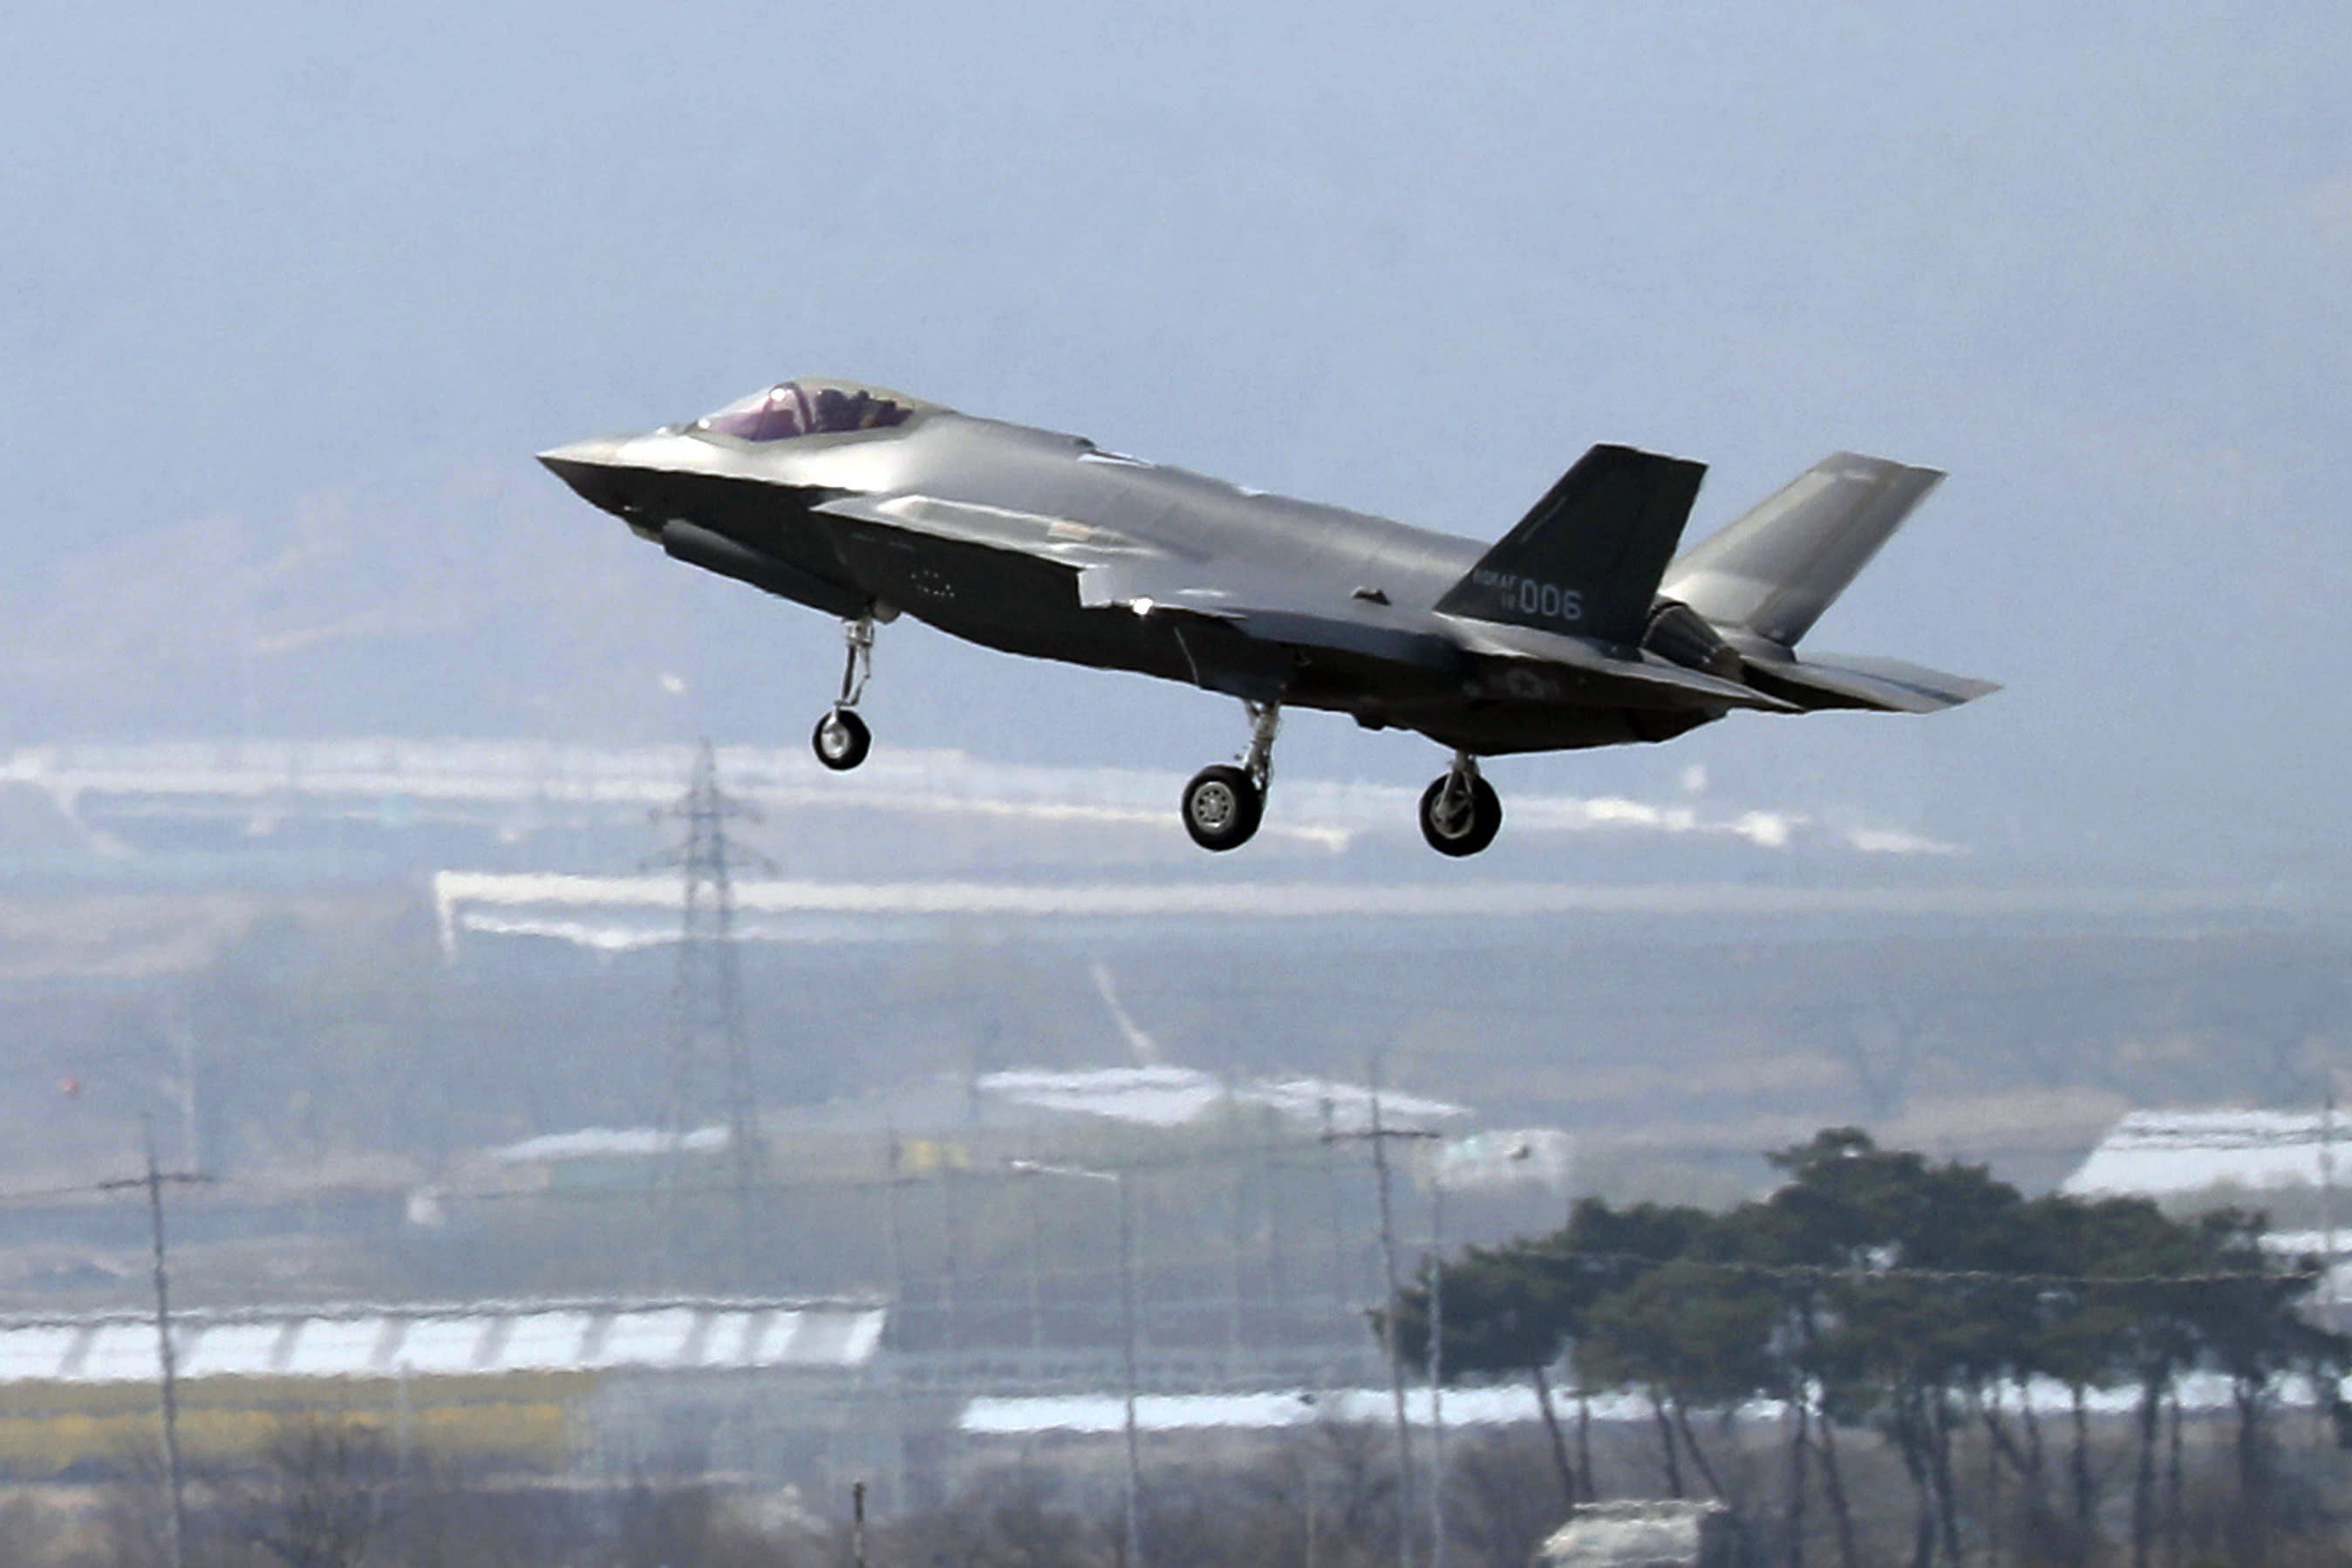 USA formally kicks Turkey out of F-35 program